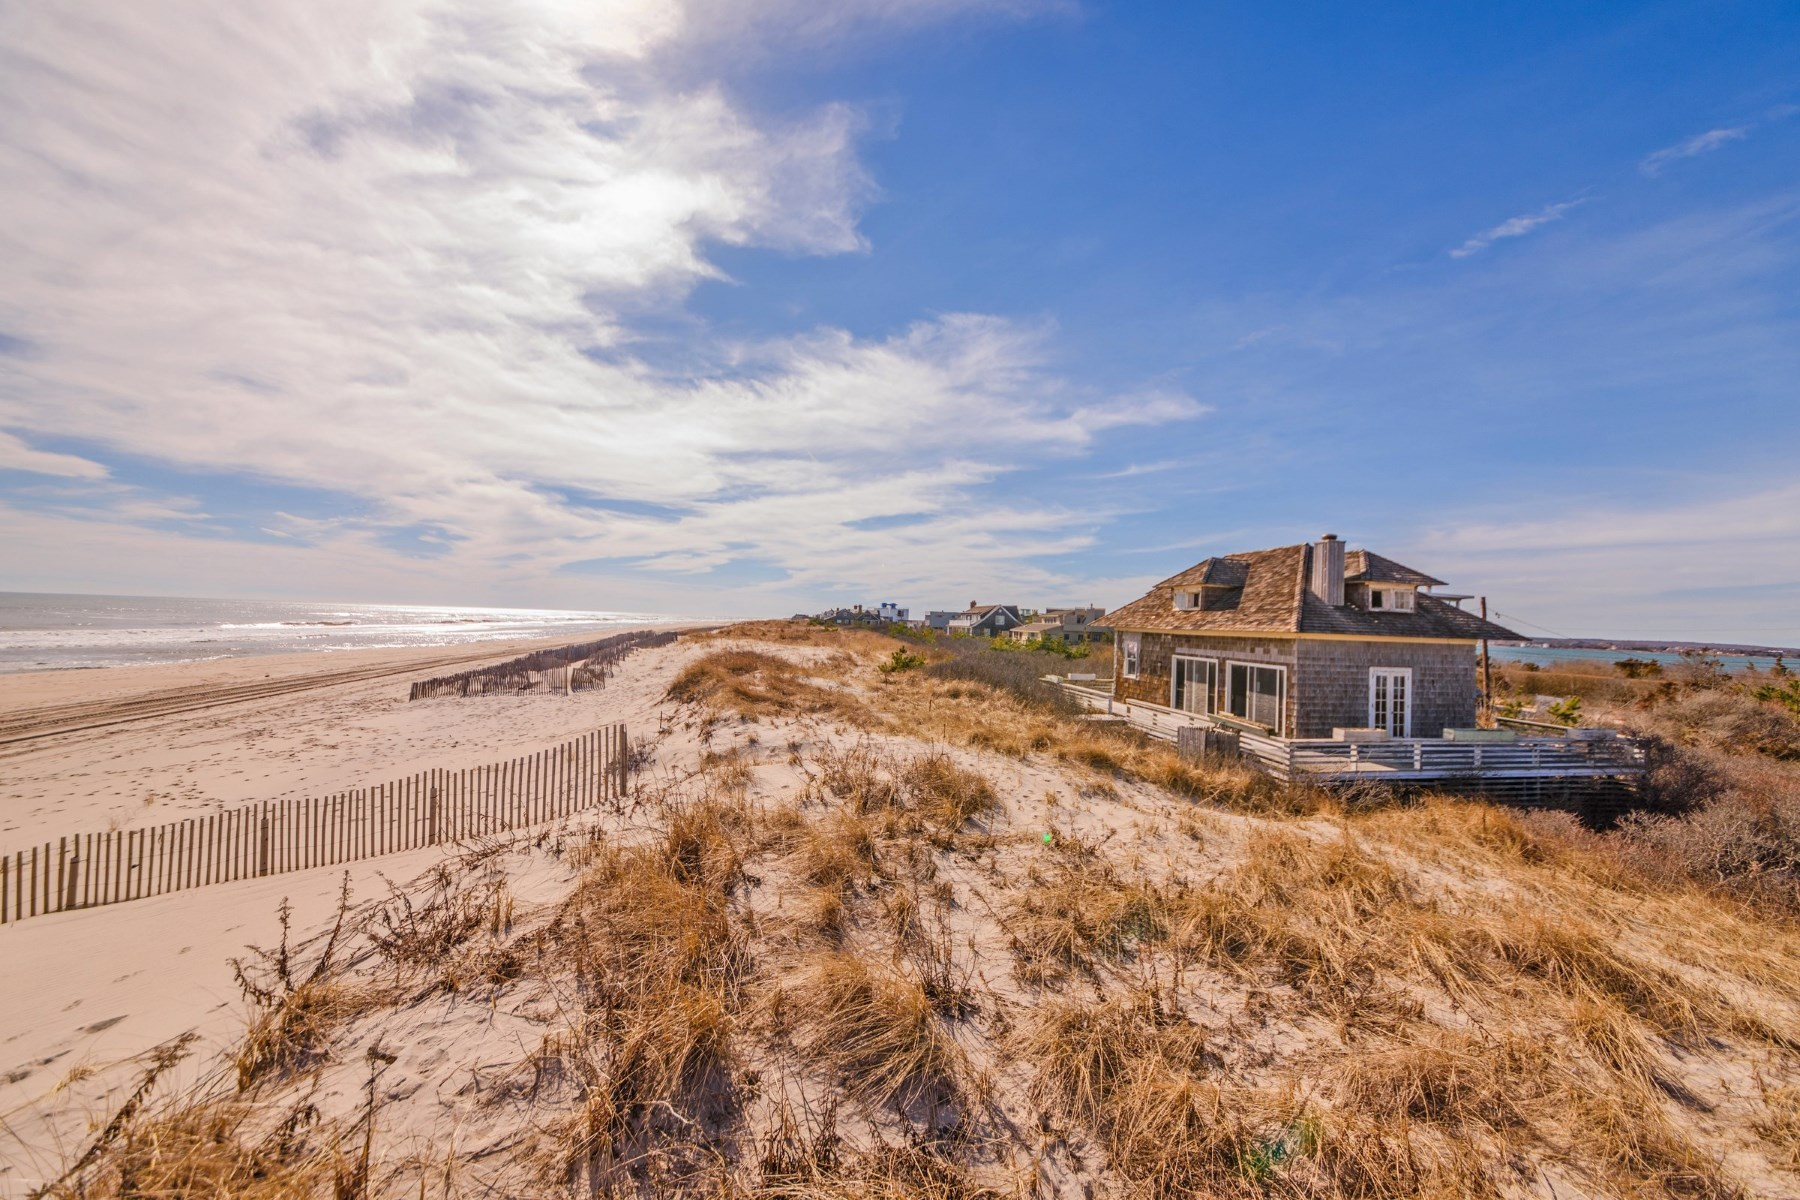 Single Family Home for Sale at Premier Oceanfront on Coveted Dune Road 77 Dune Road Bridgehampton South, Bridgehampton, New York, 11932 United States